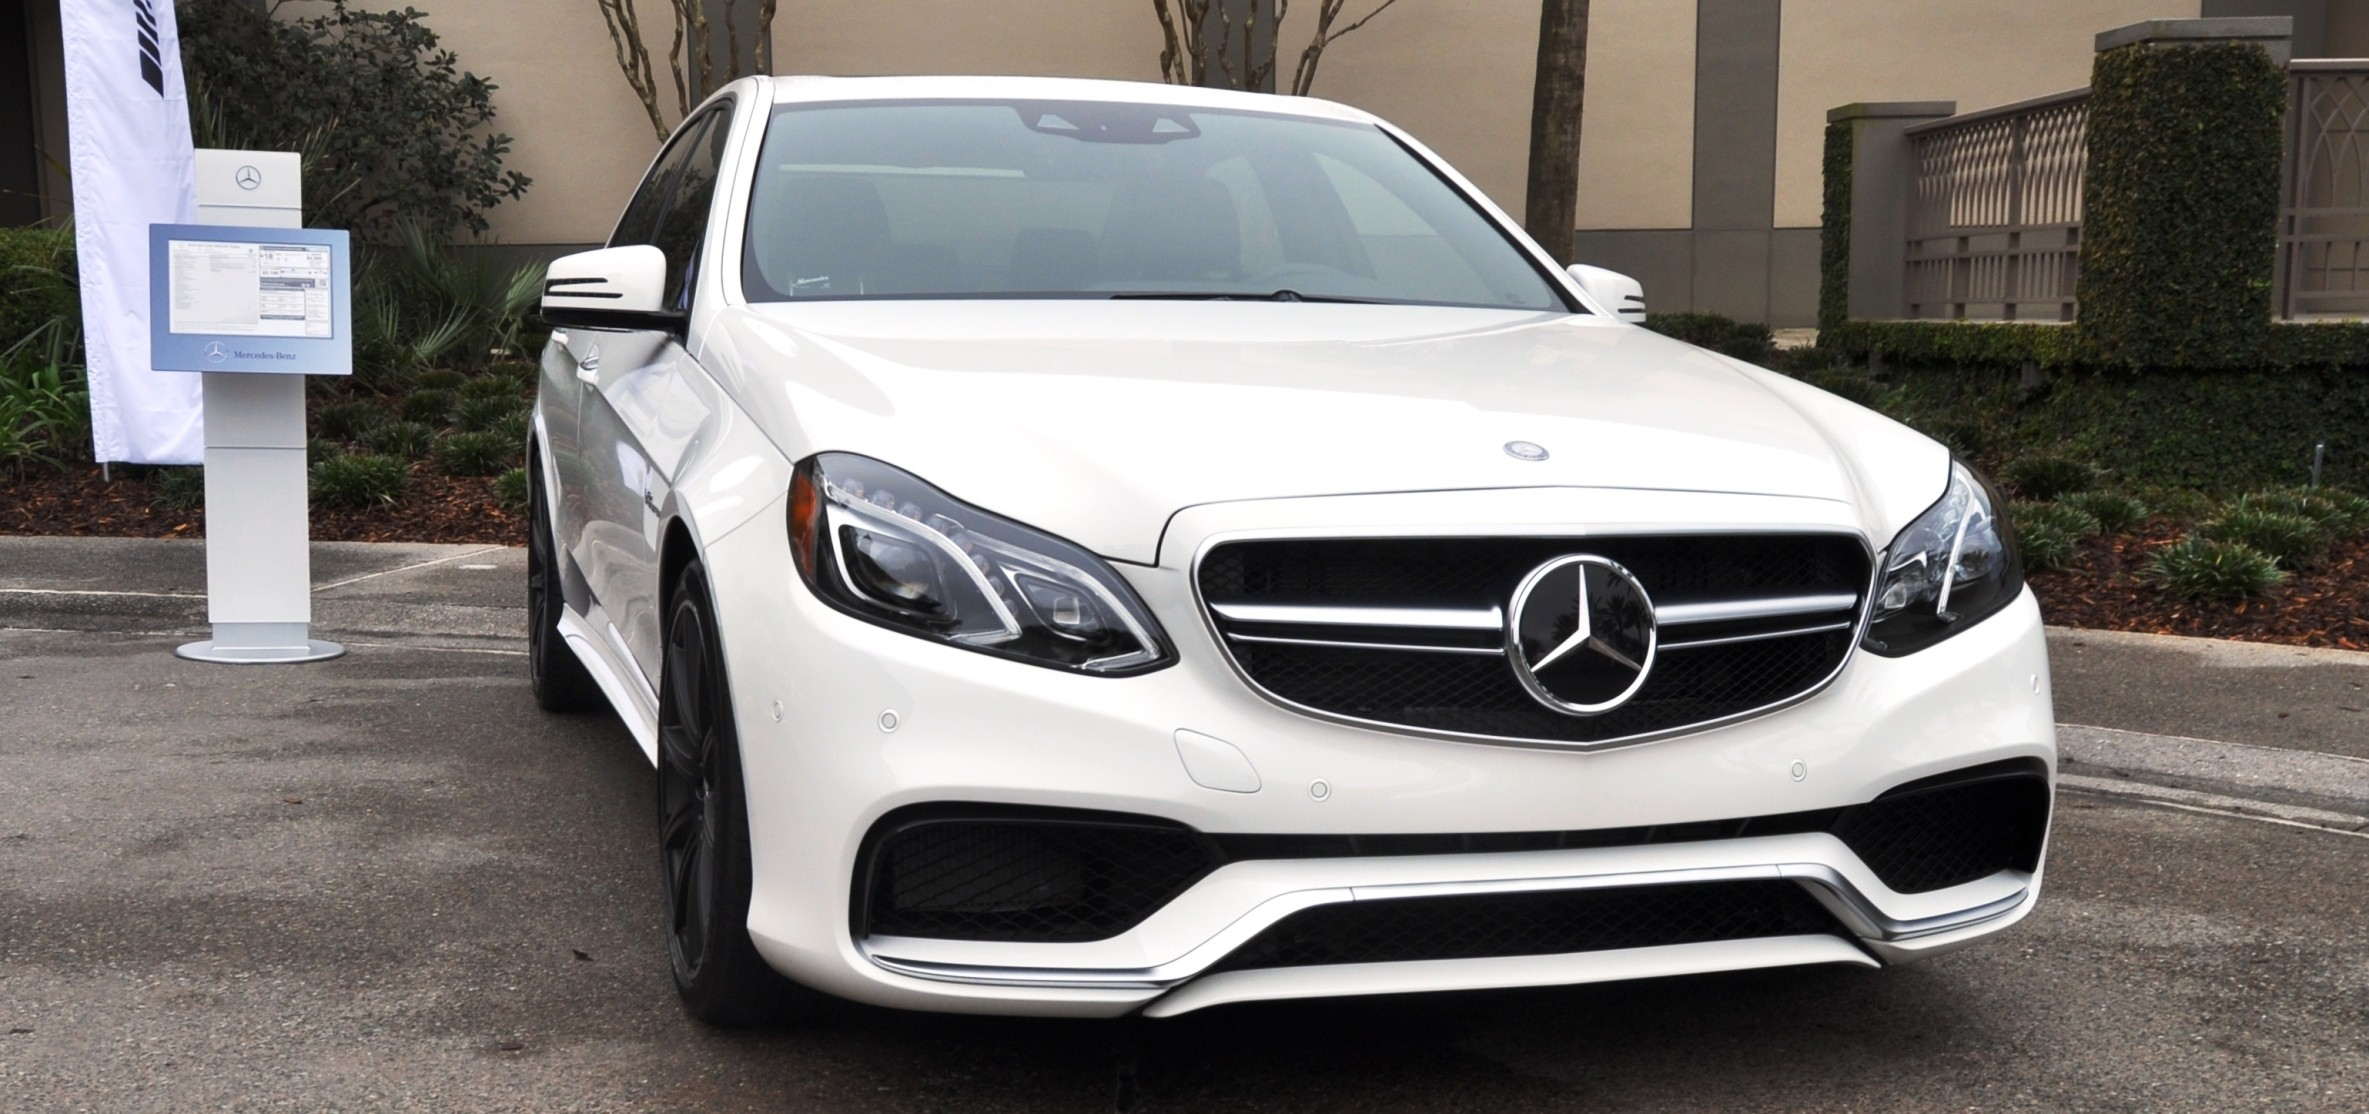 The white knight 2014 mercedes benz e63 amg 4matic s for Mercedes benz amg e63